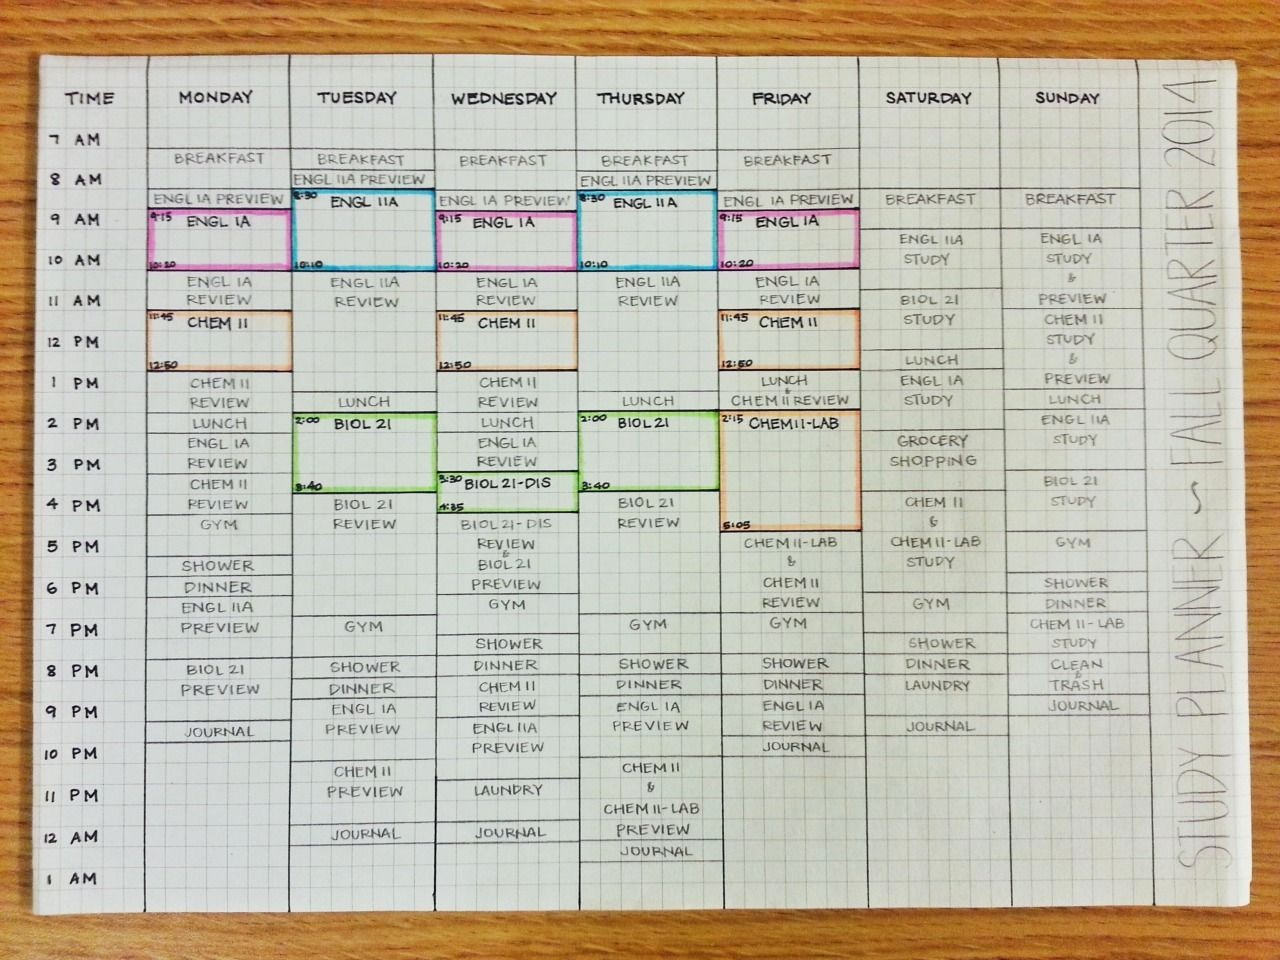 Study Plan Template for Students Luxury Studyforwhatmatters Updated Study Schedule Study